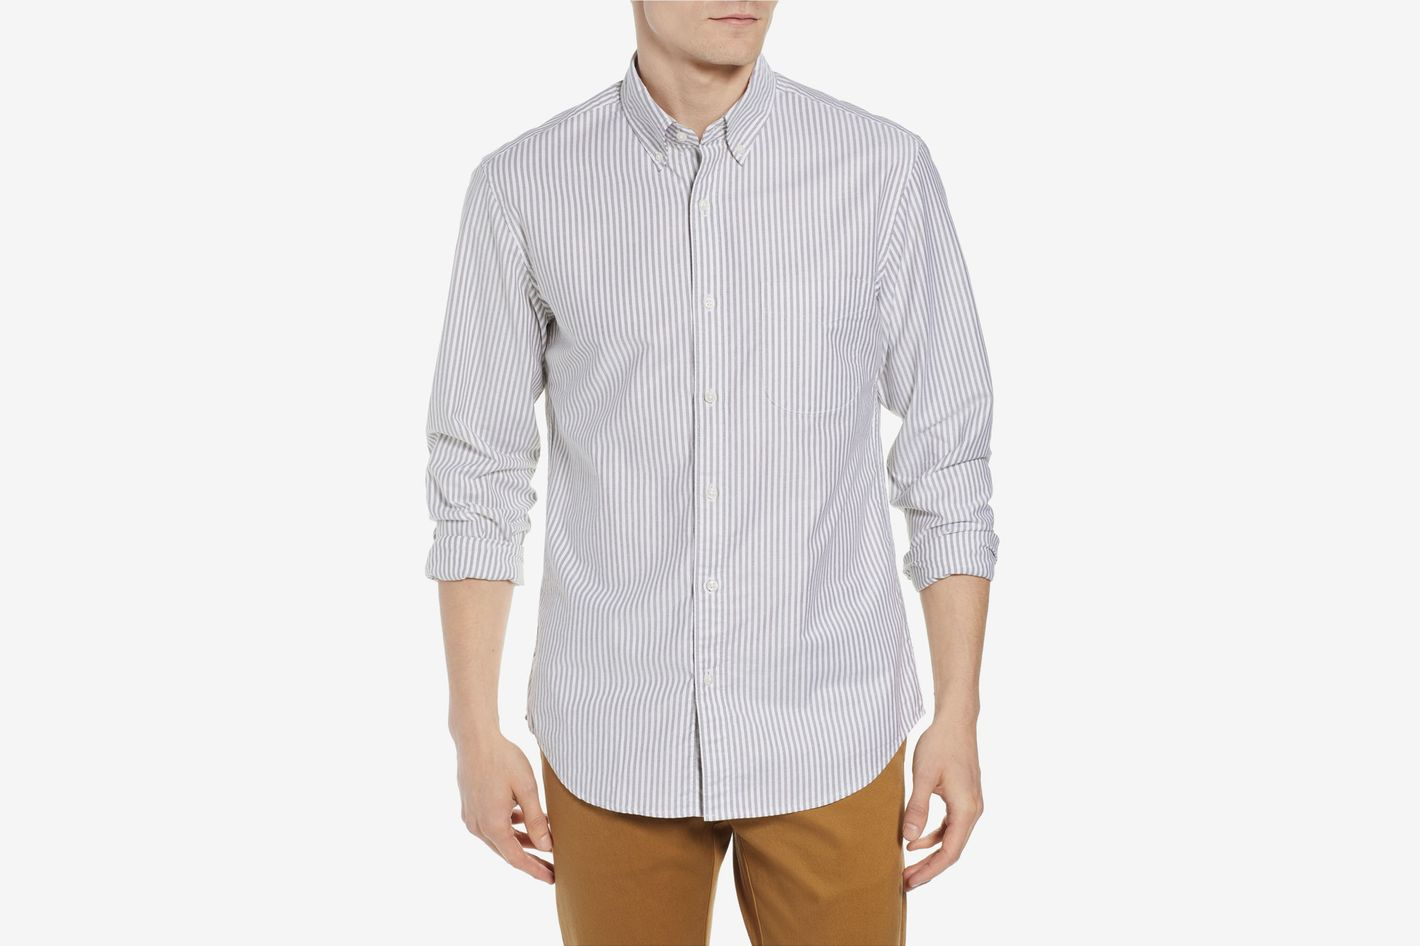 f753e70e J.Crew Slim Fit Stretch Pima Cotton Oxford Shirt at Nordstrom